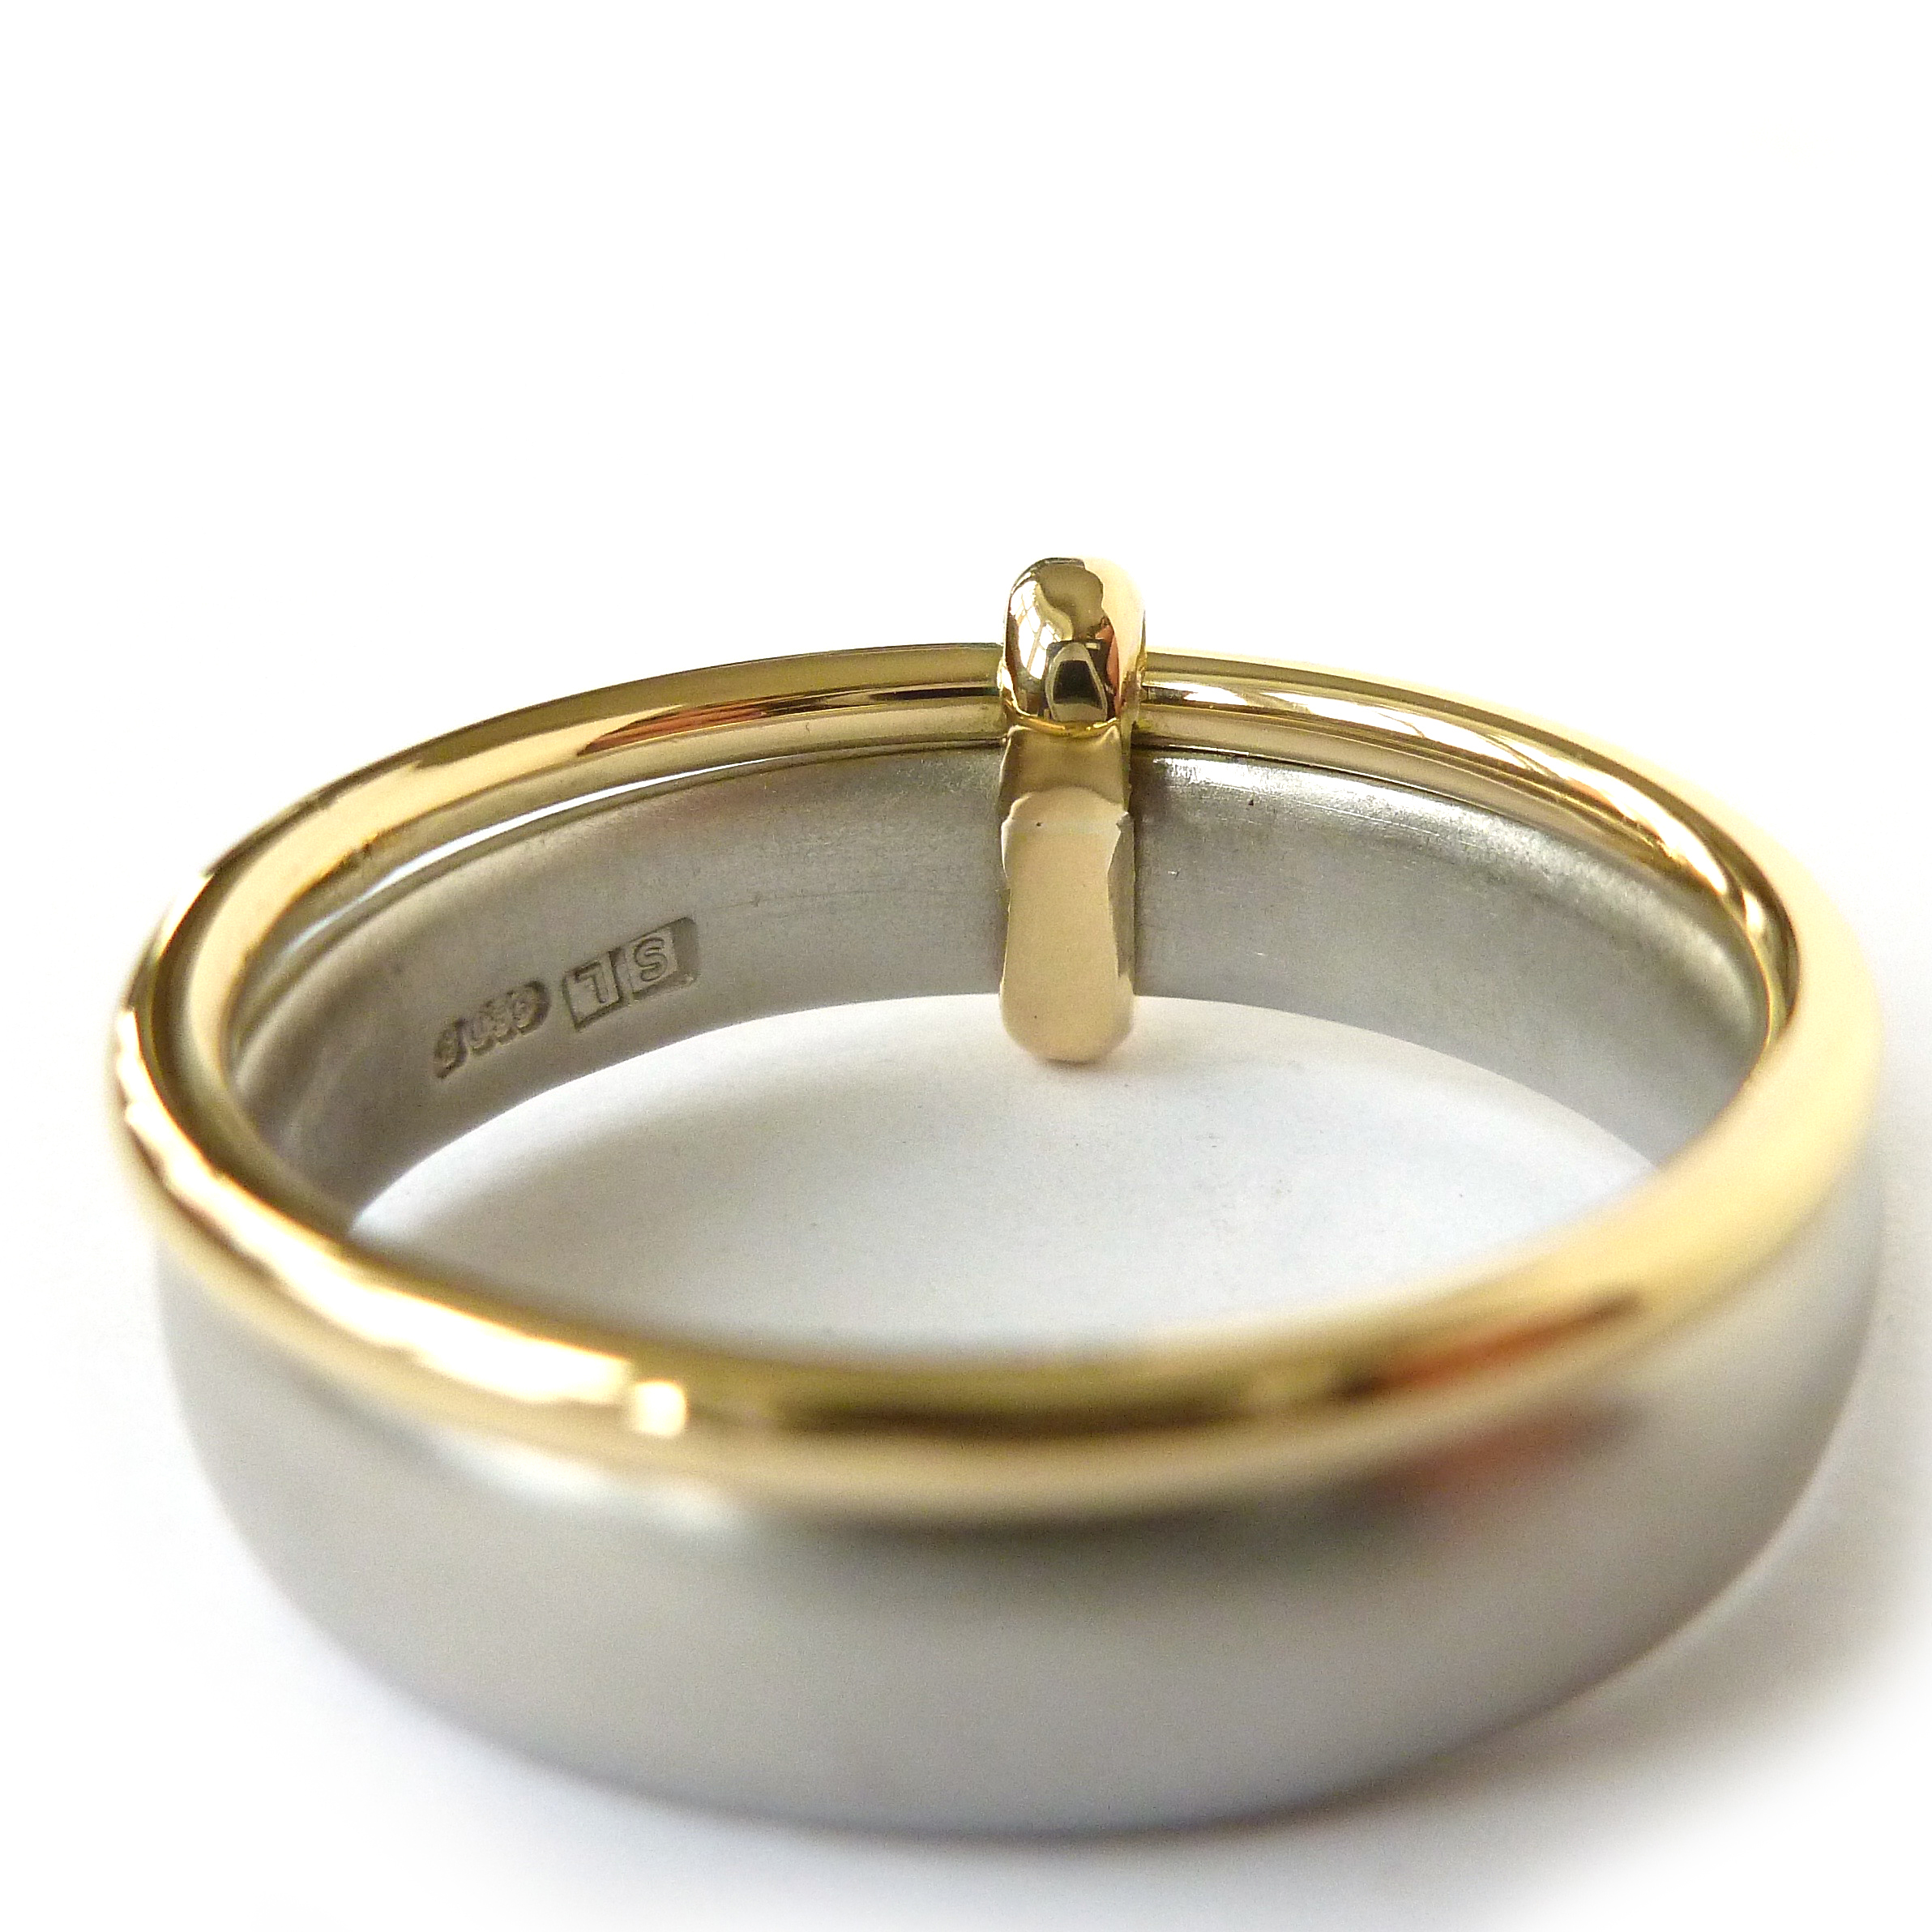 huge ring gold with white mens wedding men hand inventory hands rings of a man inspirational beautiful shop